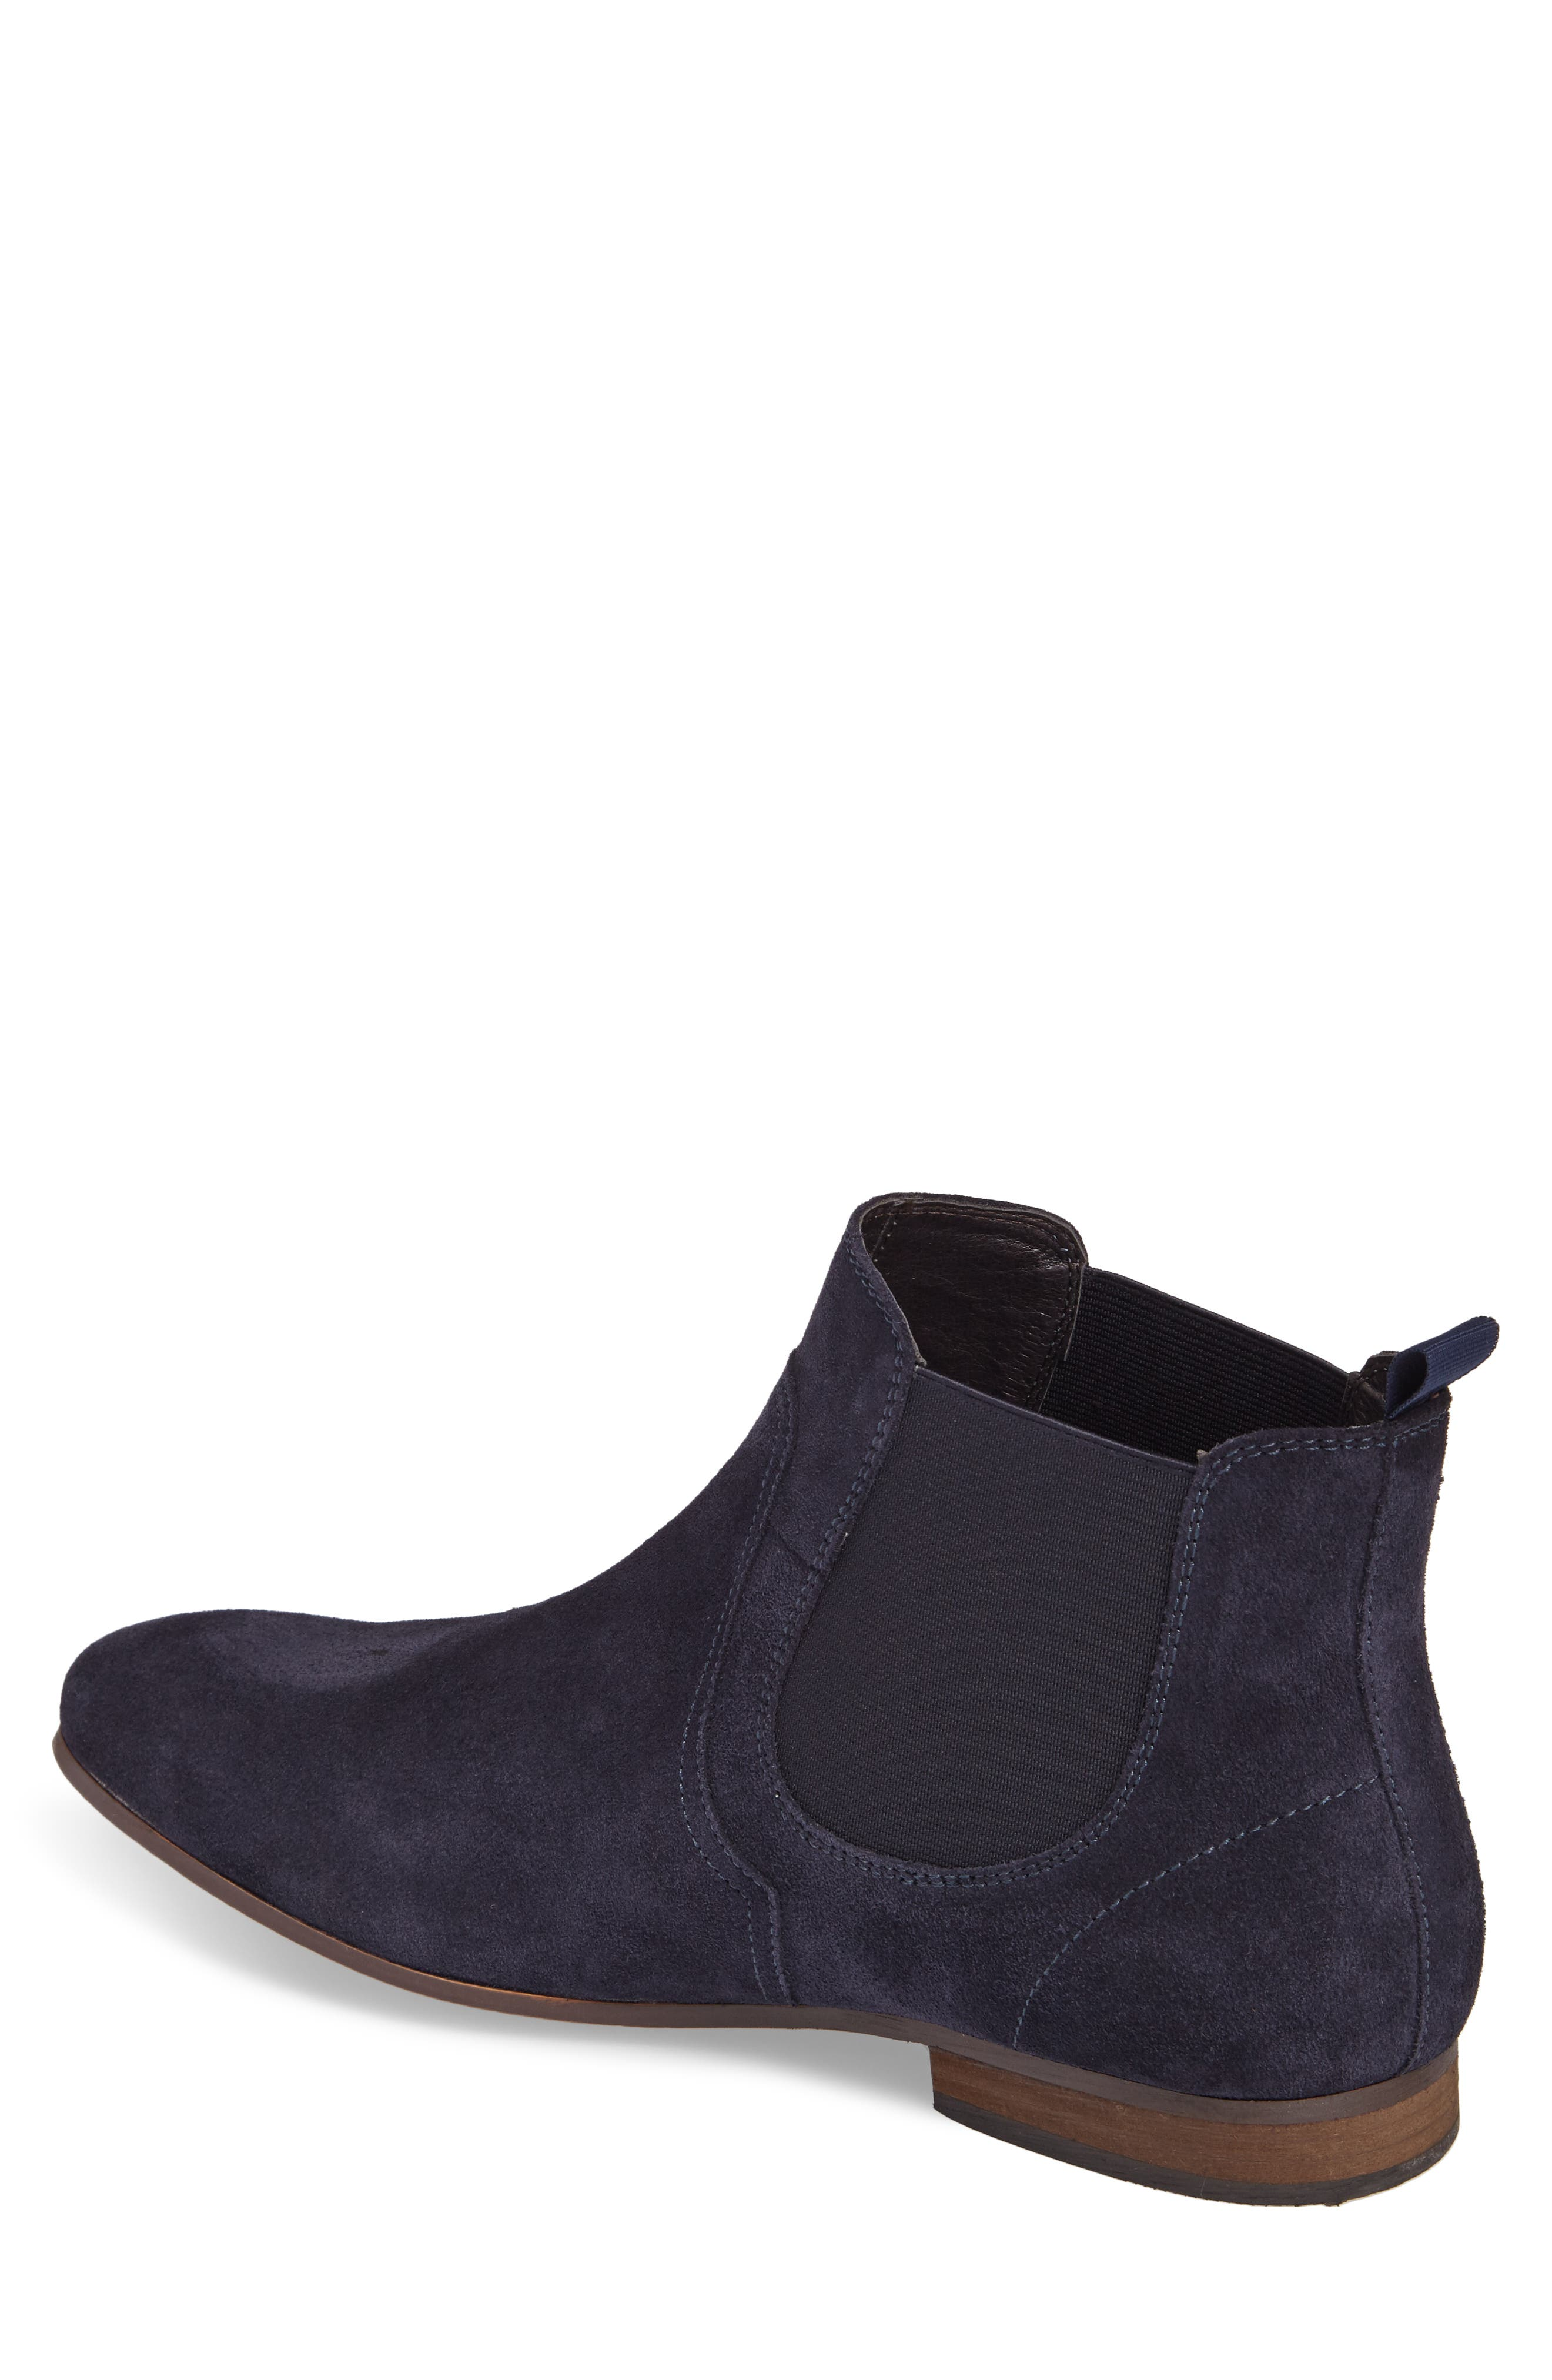 Brysen Chelsea Boot,                             Alternate thumbnail 2, color,                             Blue Suede